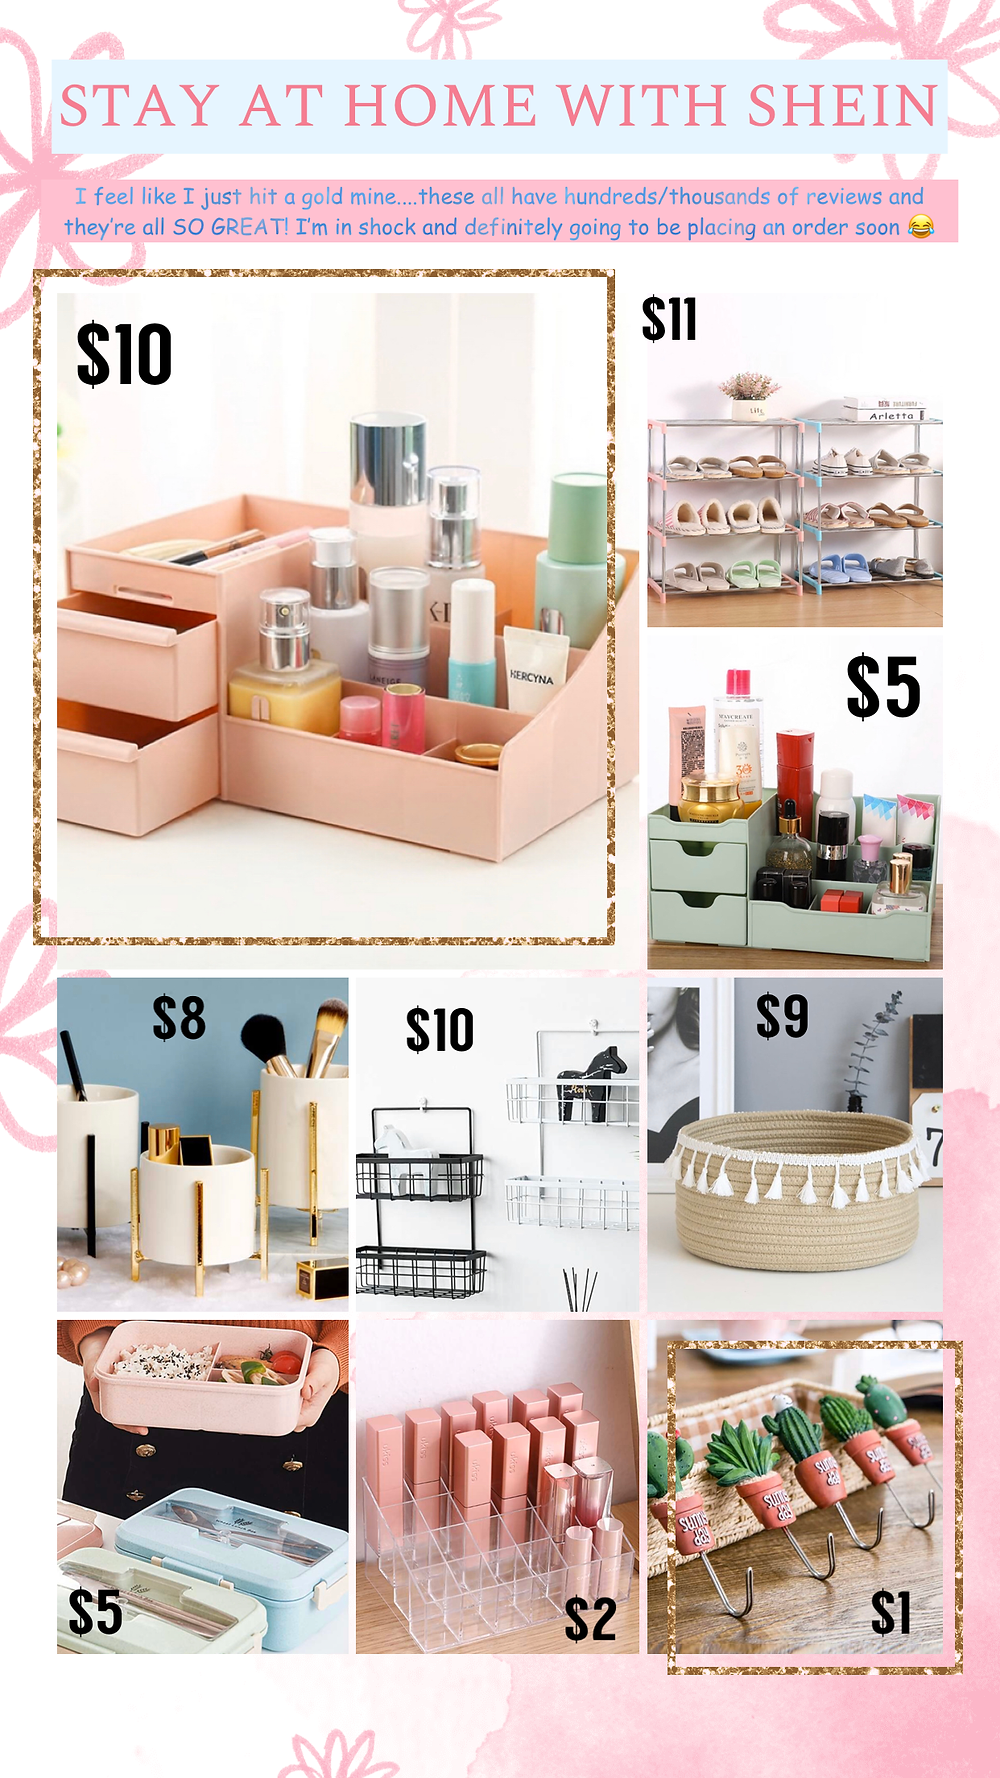 Home decor, organization, and shoe racks from Shein